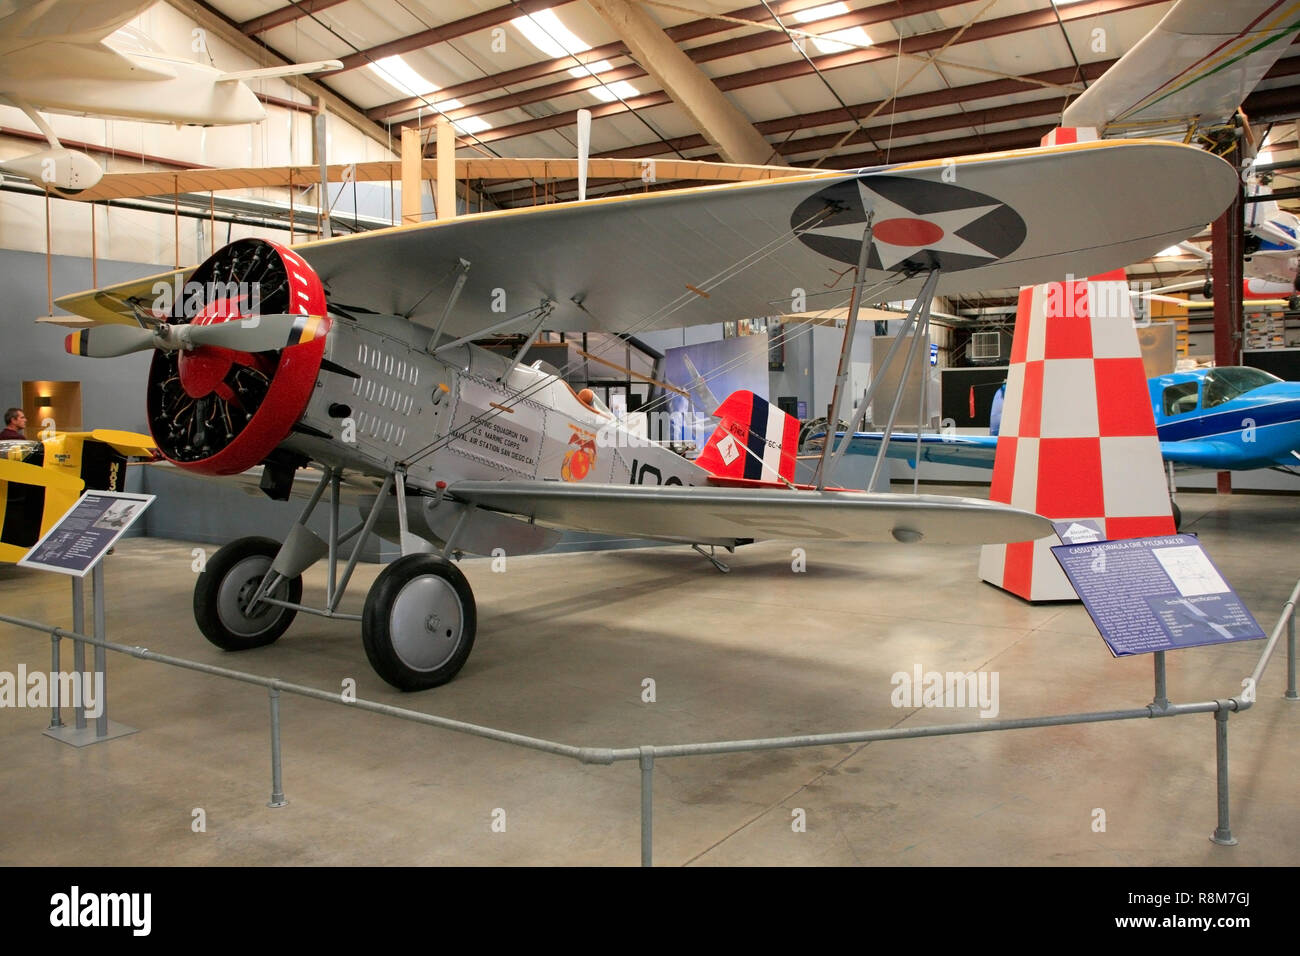 Curtiss F6C Hawk USNavy bi-plane from 1931 on display at the Pima Air & Space Museum in Tucson, AZ - Stock Image